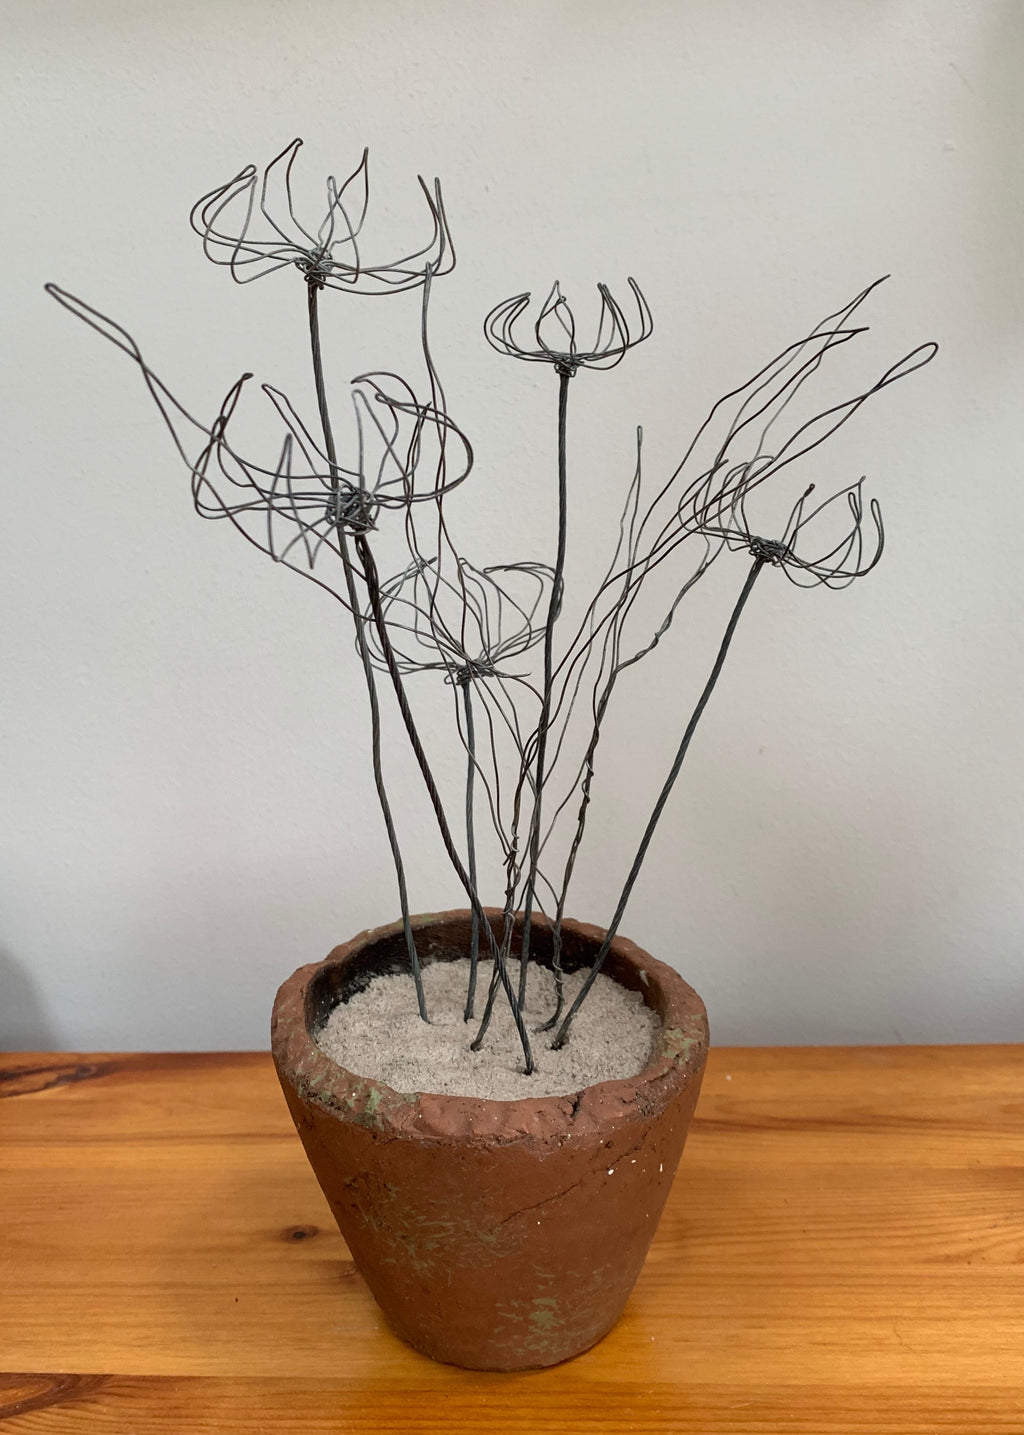 Flowers in a Clay Pot